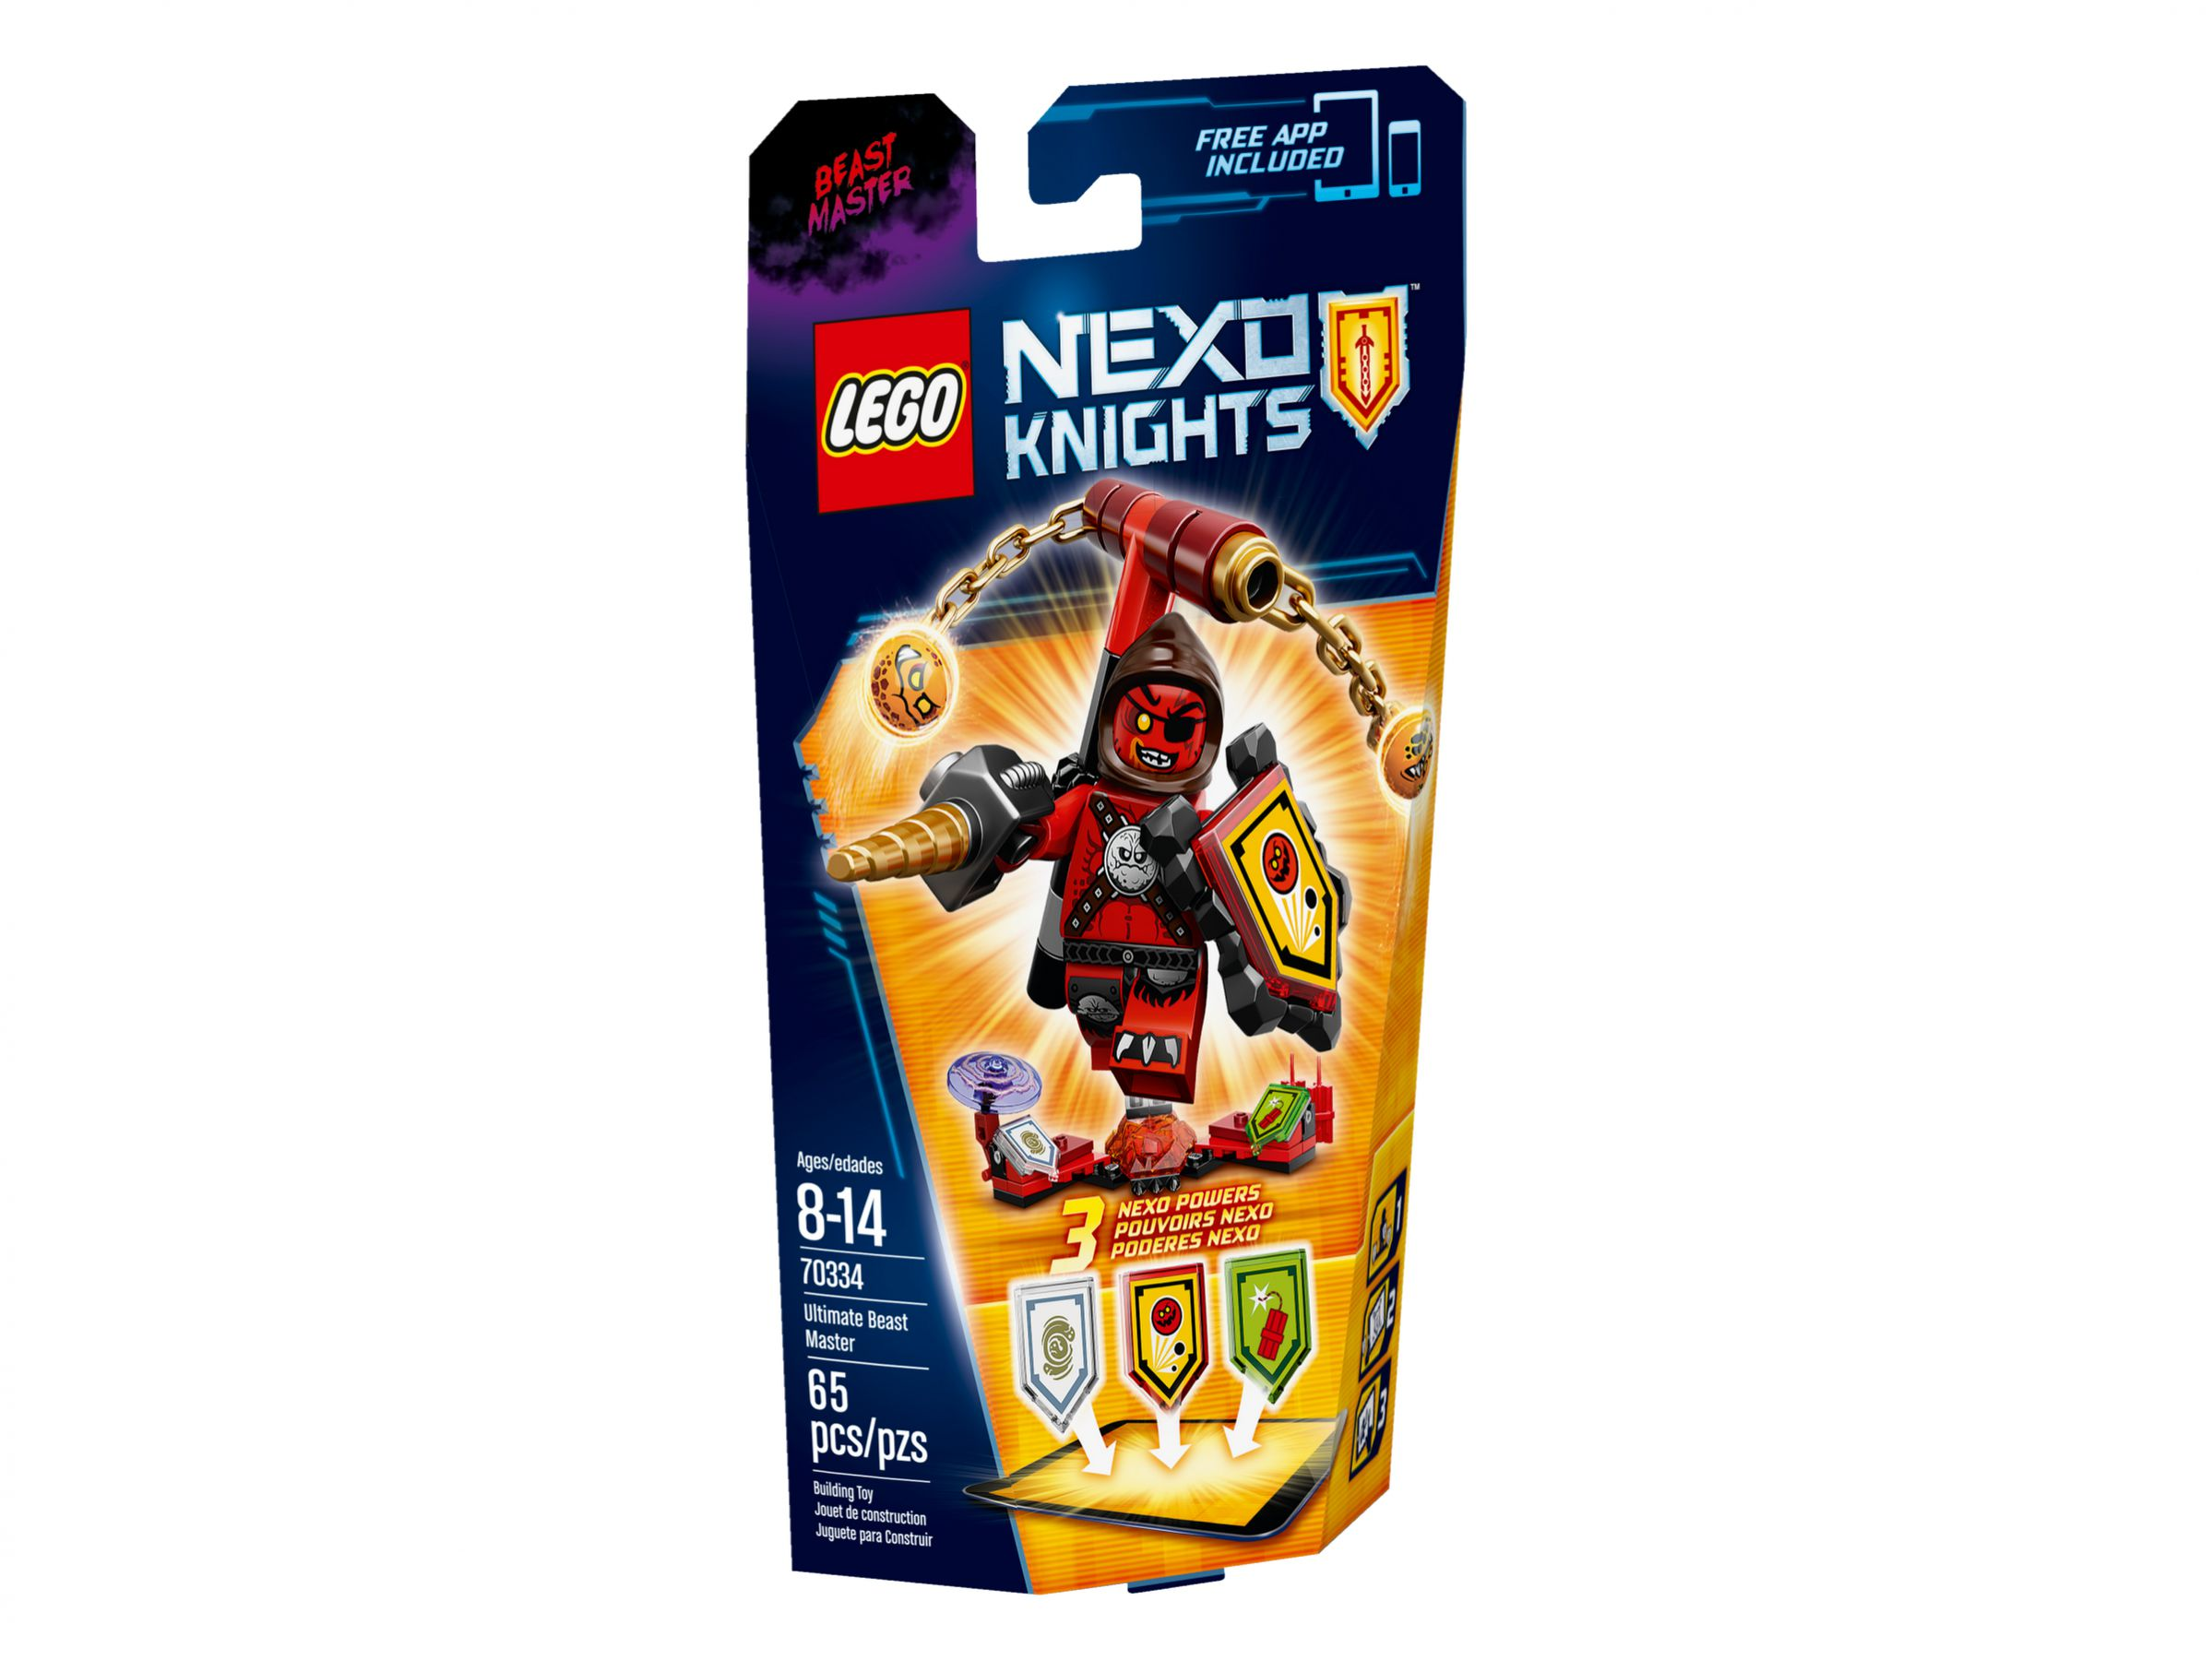 LEGO Nexo Knights 70334 Ultimativer Monster-Meister LEGO_70334_alt1.jpg